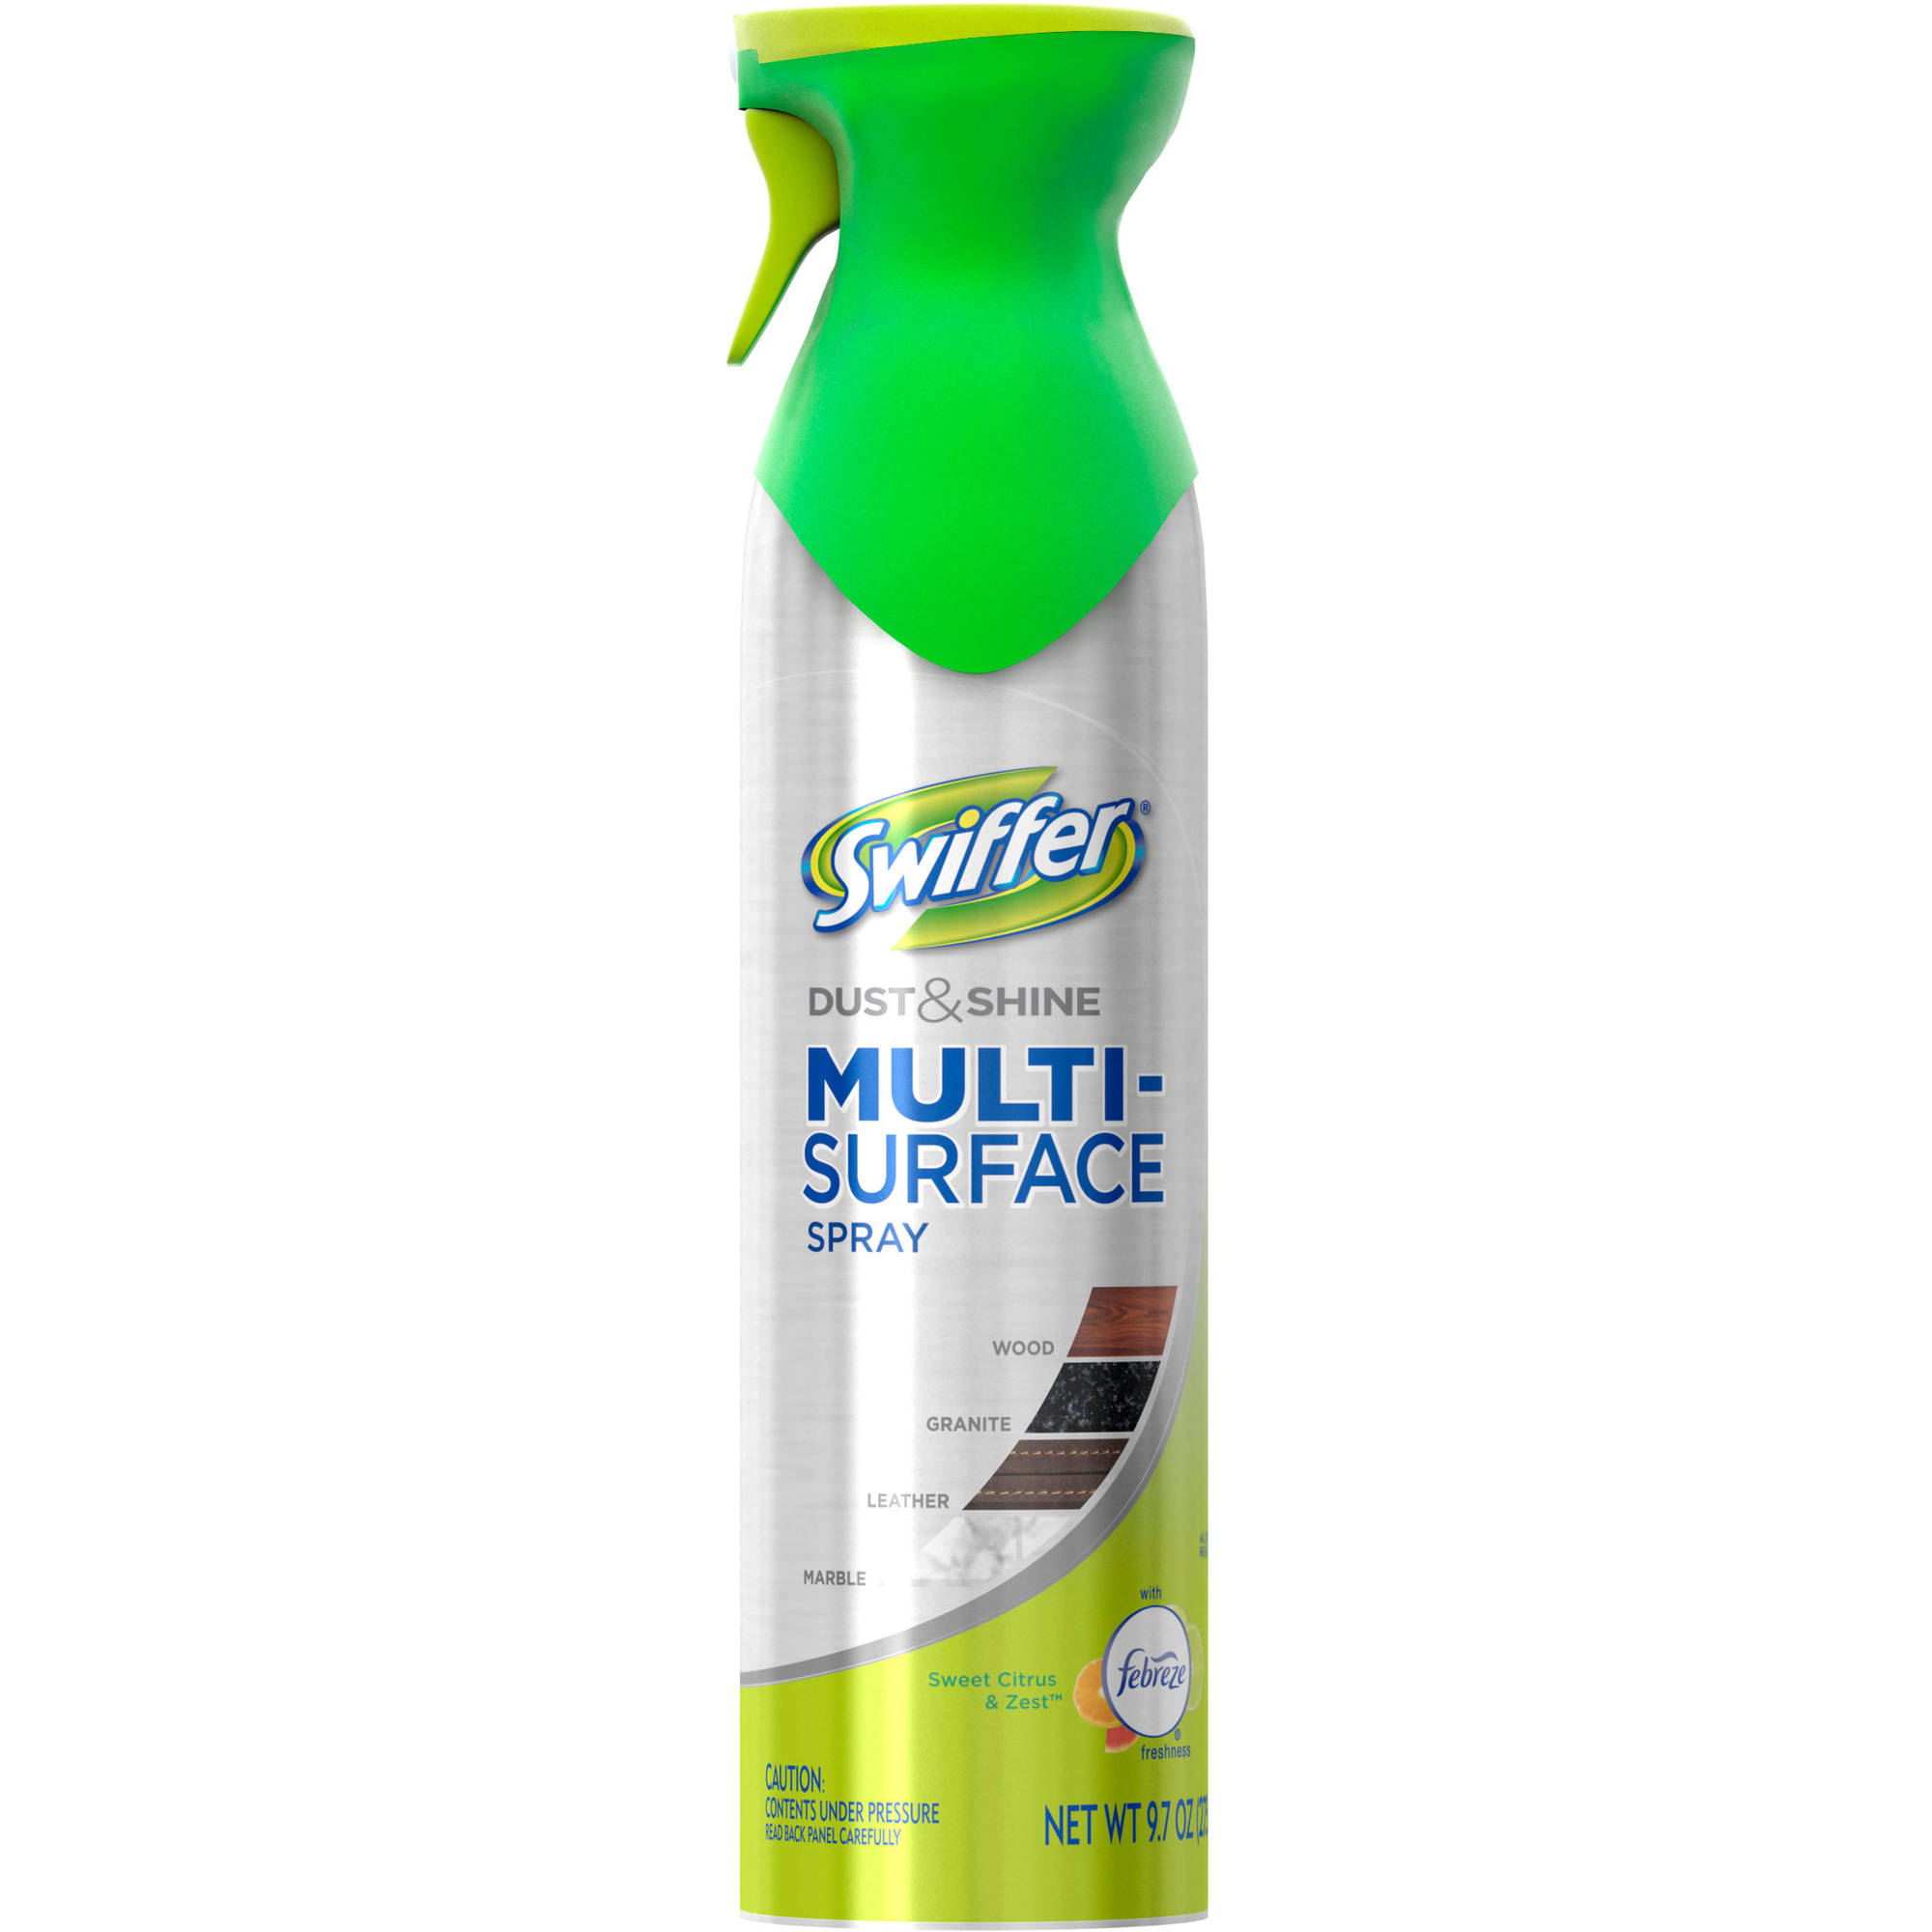 Swiffer Dust & Shine Furniture Polish Cleaner Febreze Citrus & Light Scent, 9.7 oz